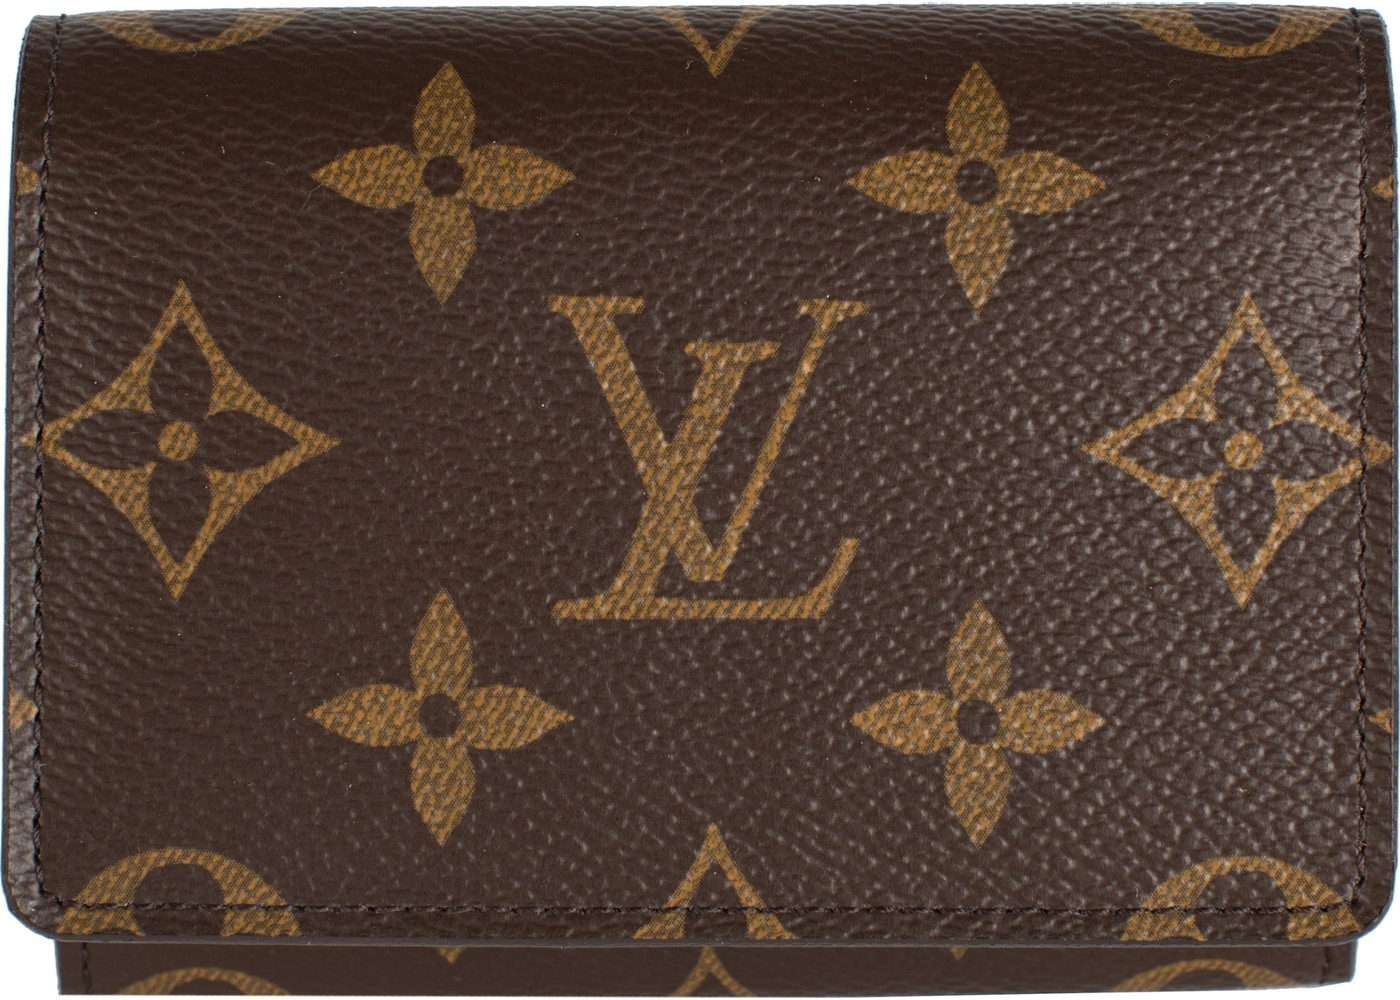 Louis Vuitton Business Card Holder Monogram